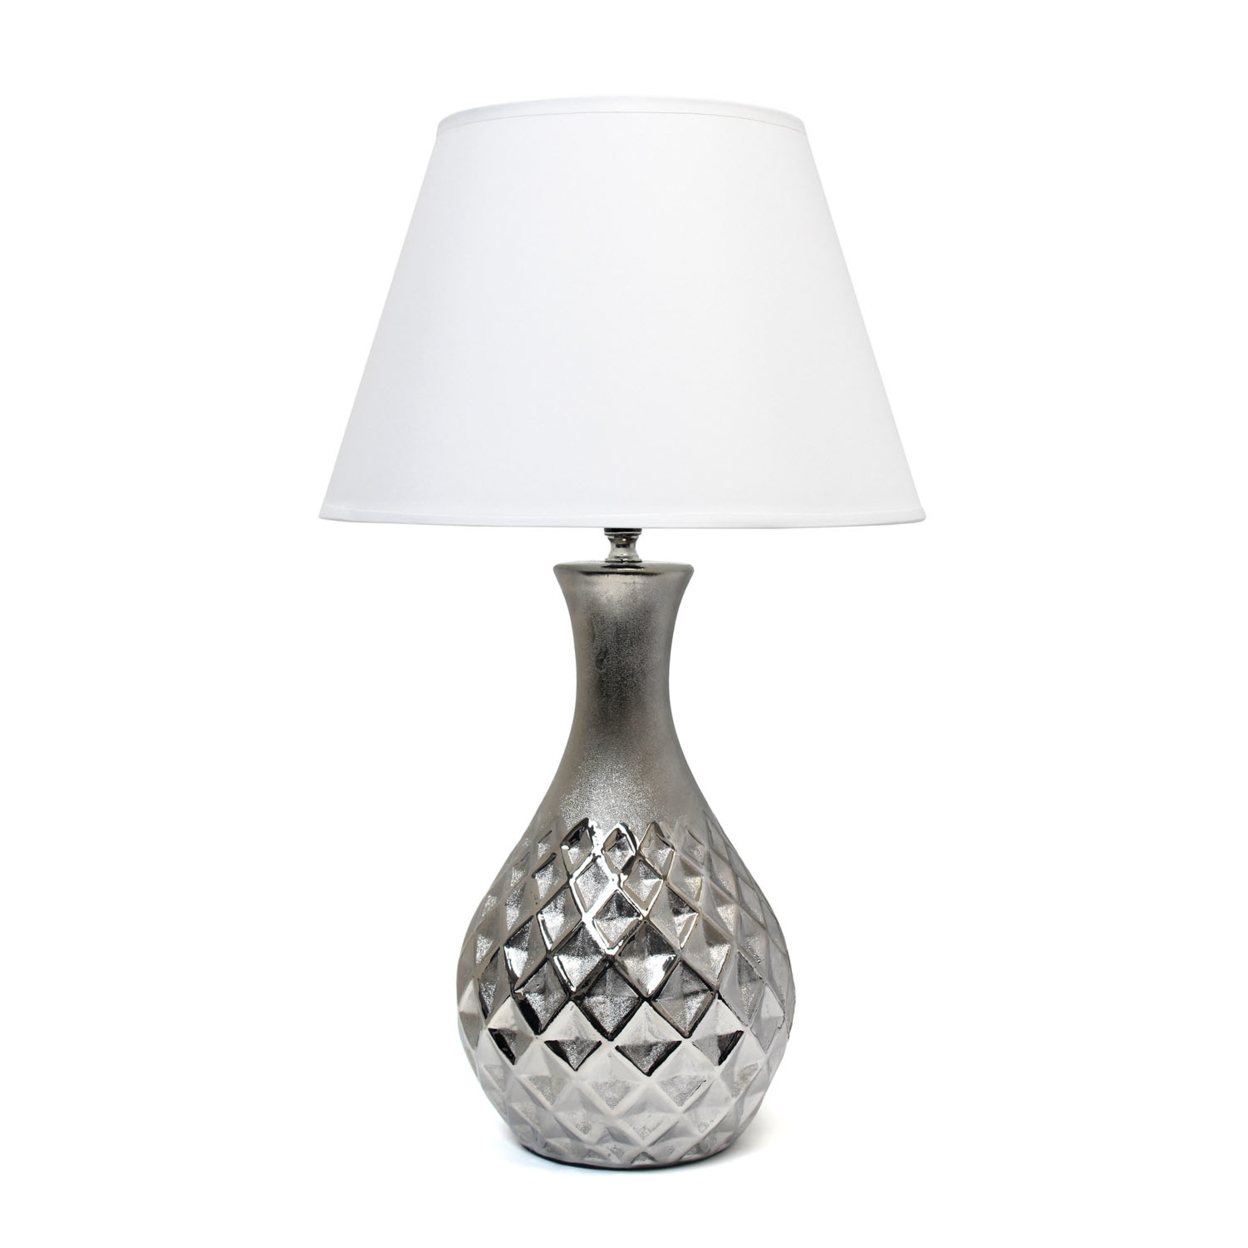 Elegant Designs Juliet Ceramic Table Lamp with Metallic Silver Base and White Fabric Shade shakespeare william rdr cd [lv 2] romeo and juliet